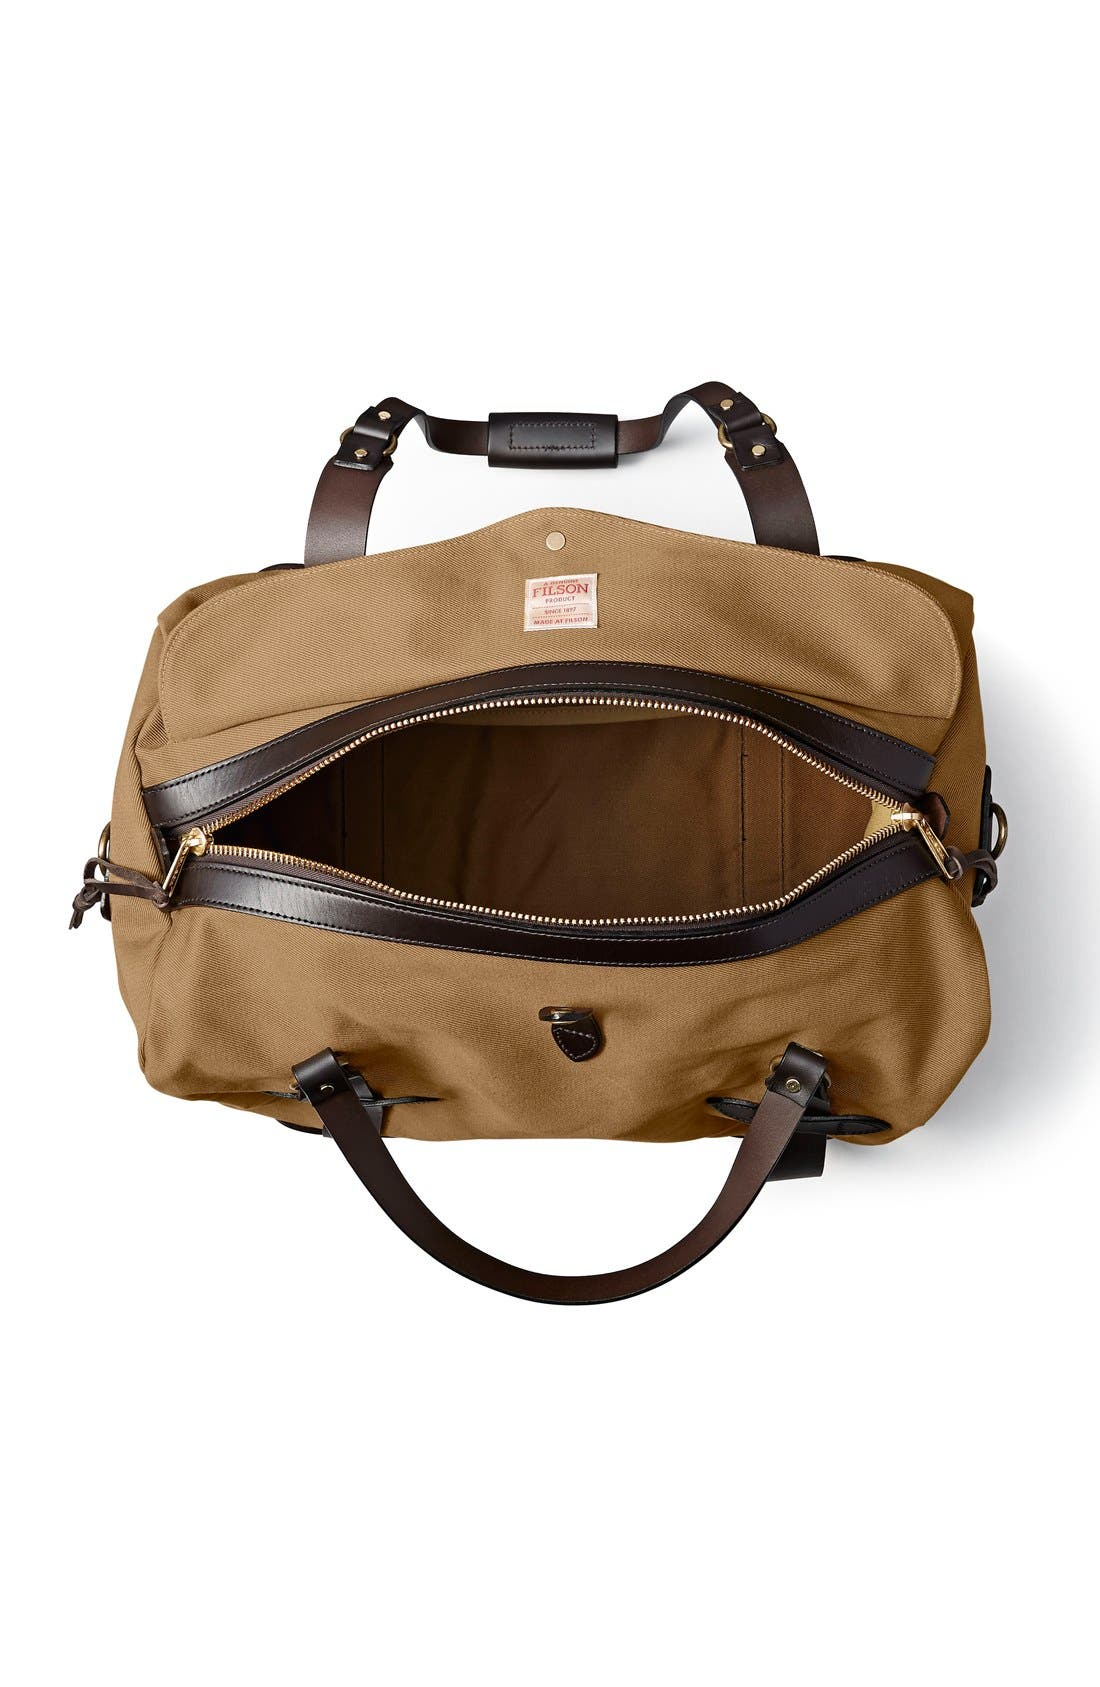 Medium Duffel Bag,                             Alternate thumbnail 3, color,                             Tan